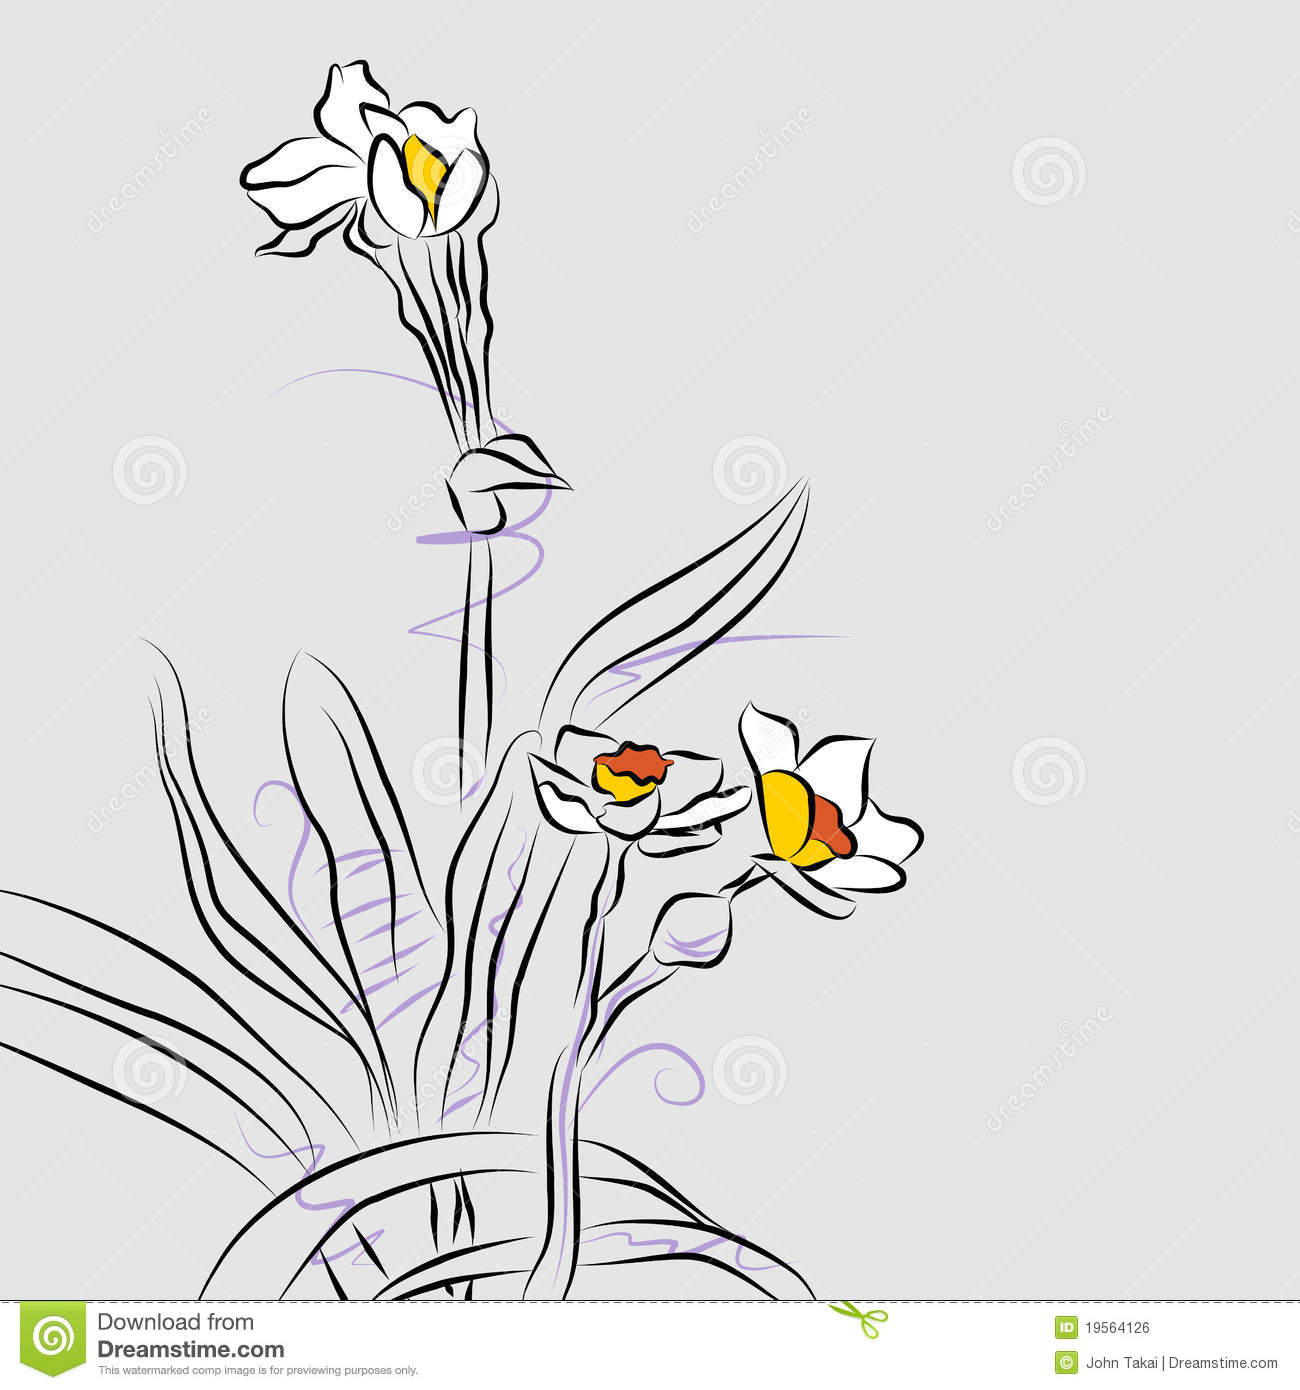 Orchid Flower Line Drawing : Orchid flower arrangement line drawing royalty free stock